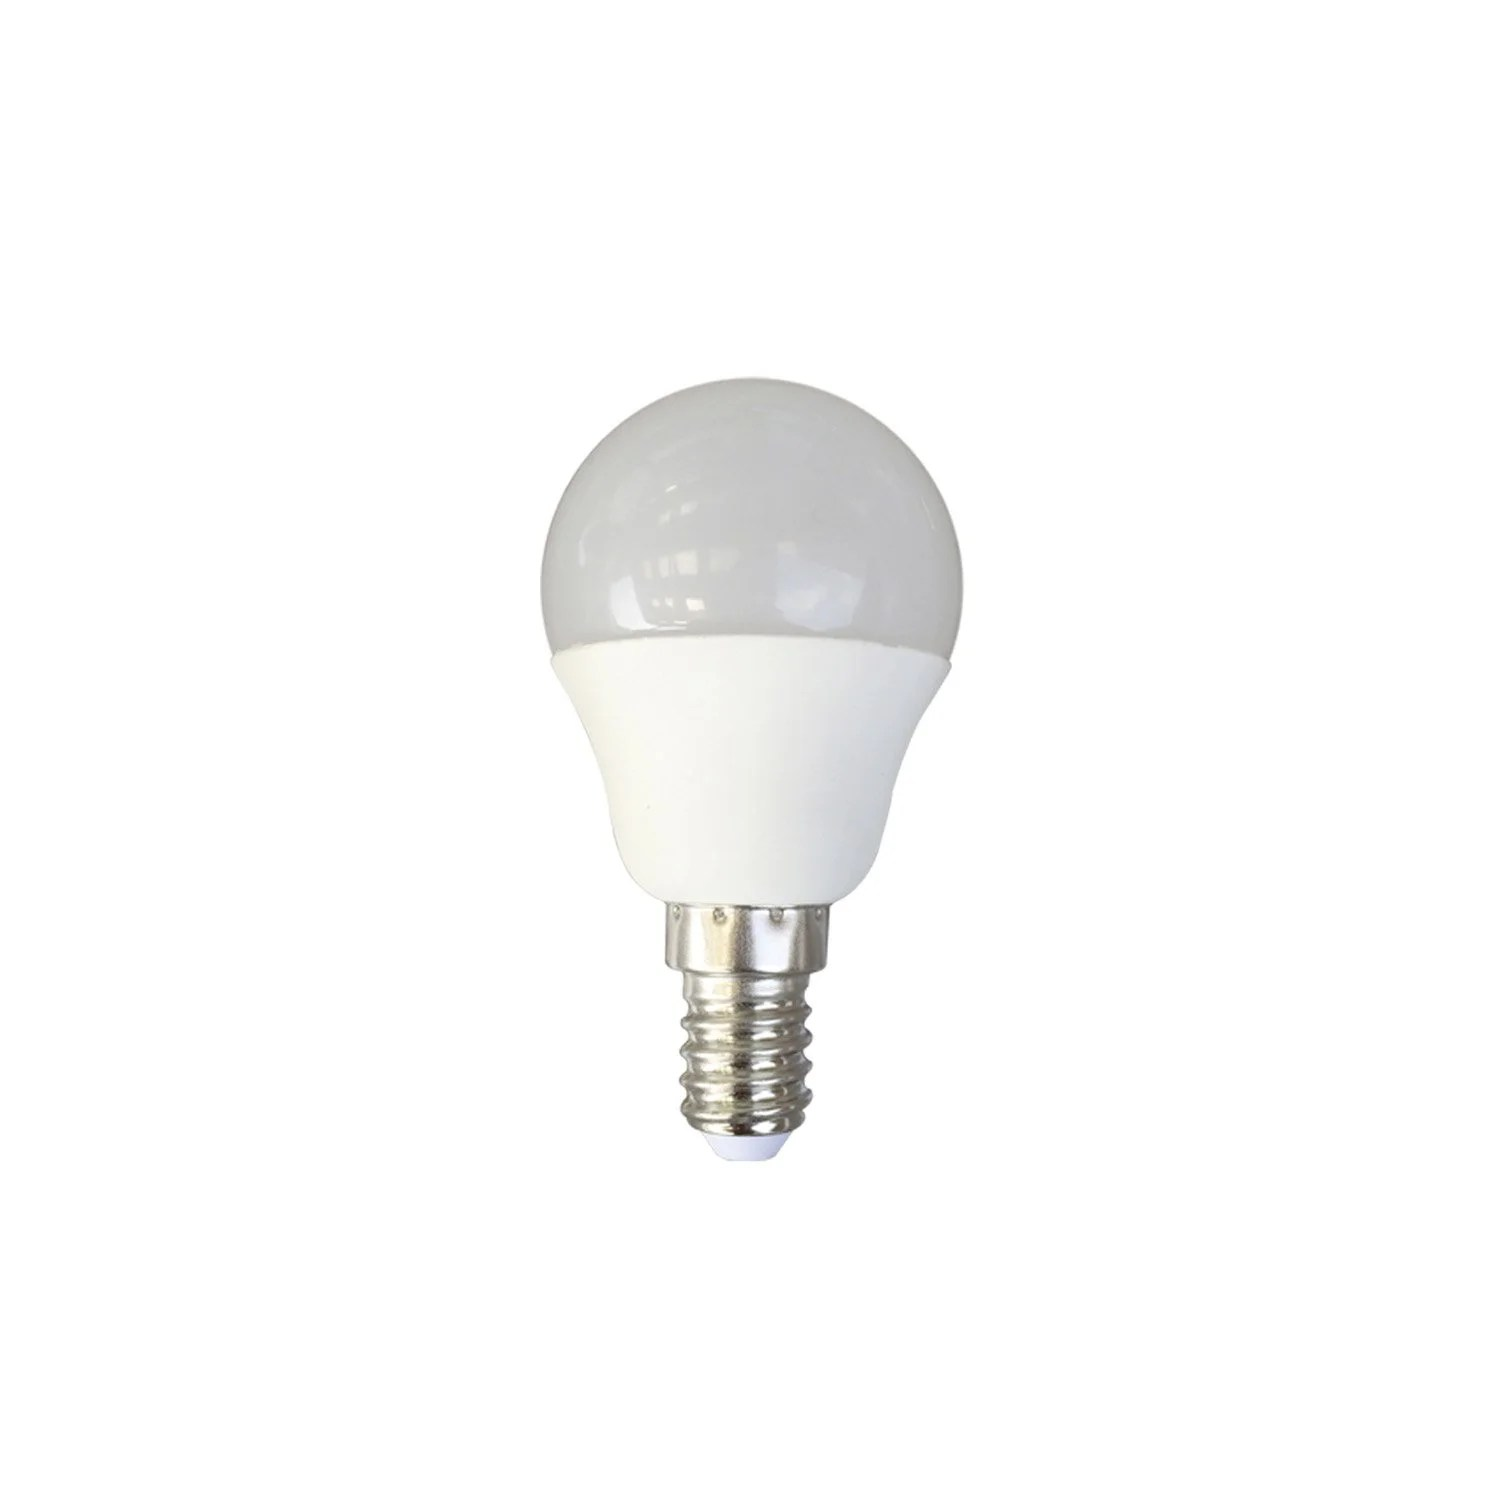 Ampoule Led Leroy Merlin Quelques Liens Utiles